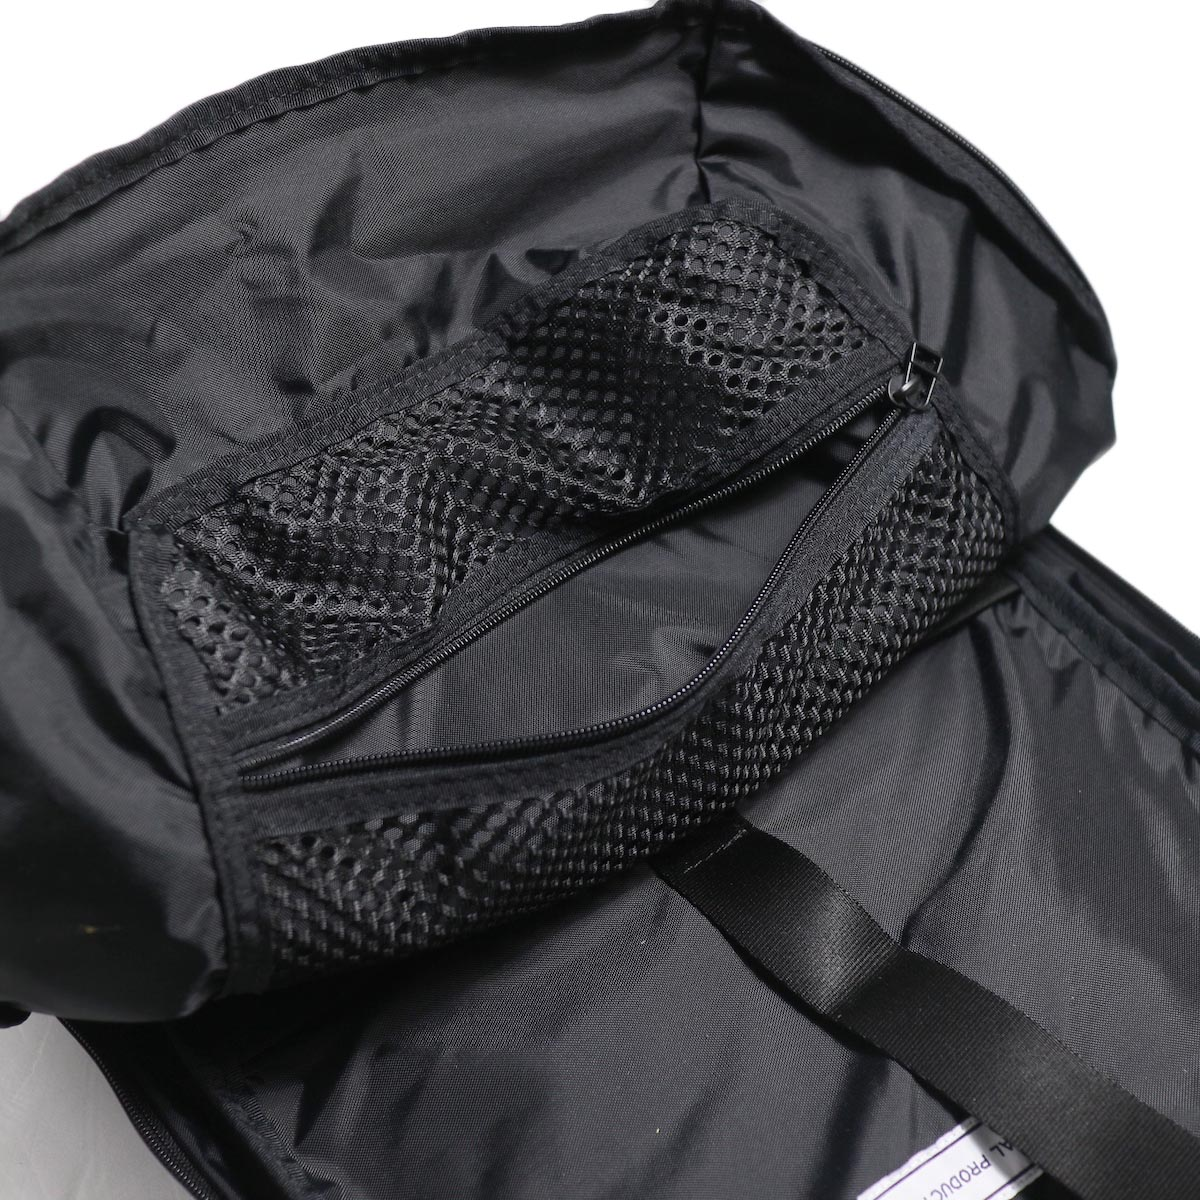 UNIVERSAL PRODUCTS / New Utility Bag -Black メッシュポケット